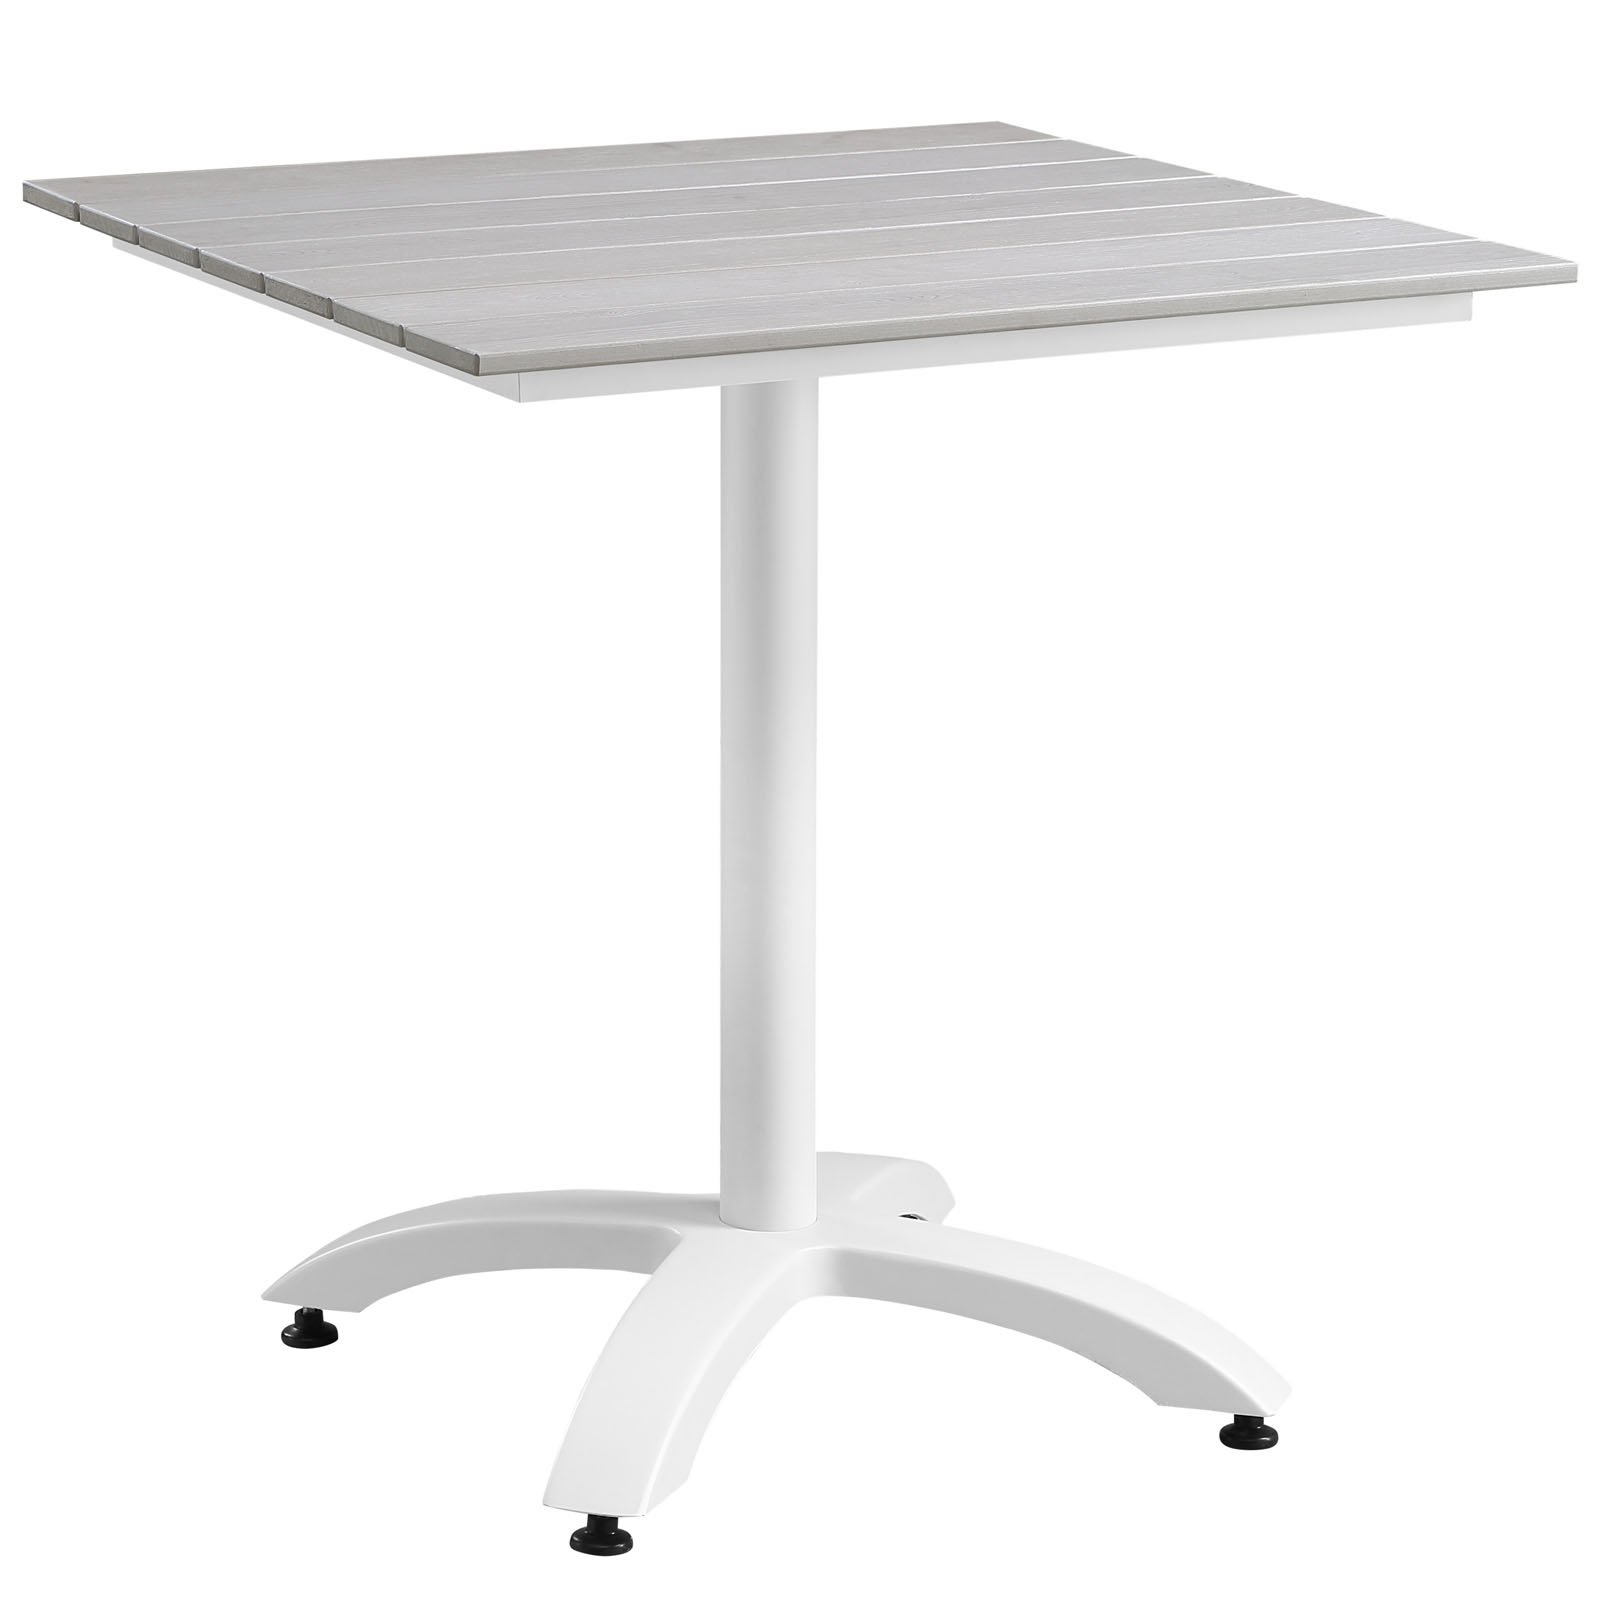 Plutus Brands MF1848 Outdoor Patio Dining Table, 28'', White Light Gray by Plutus Brands